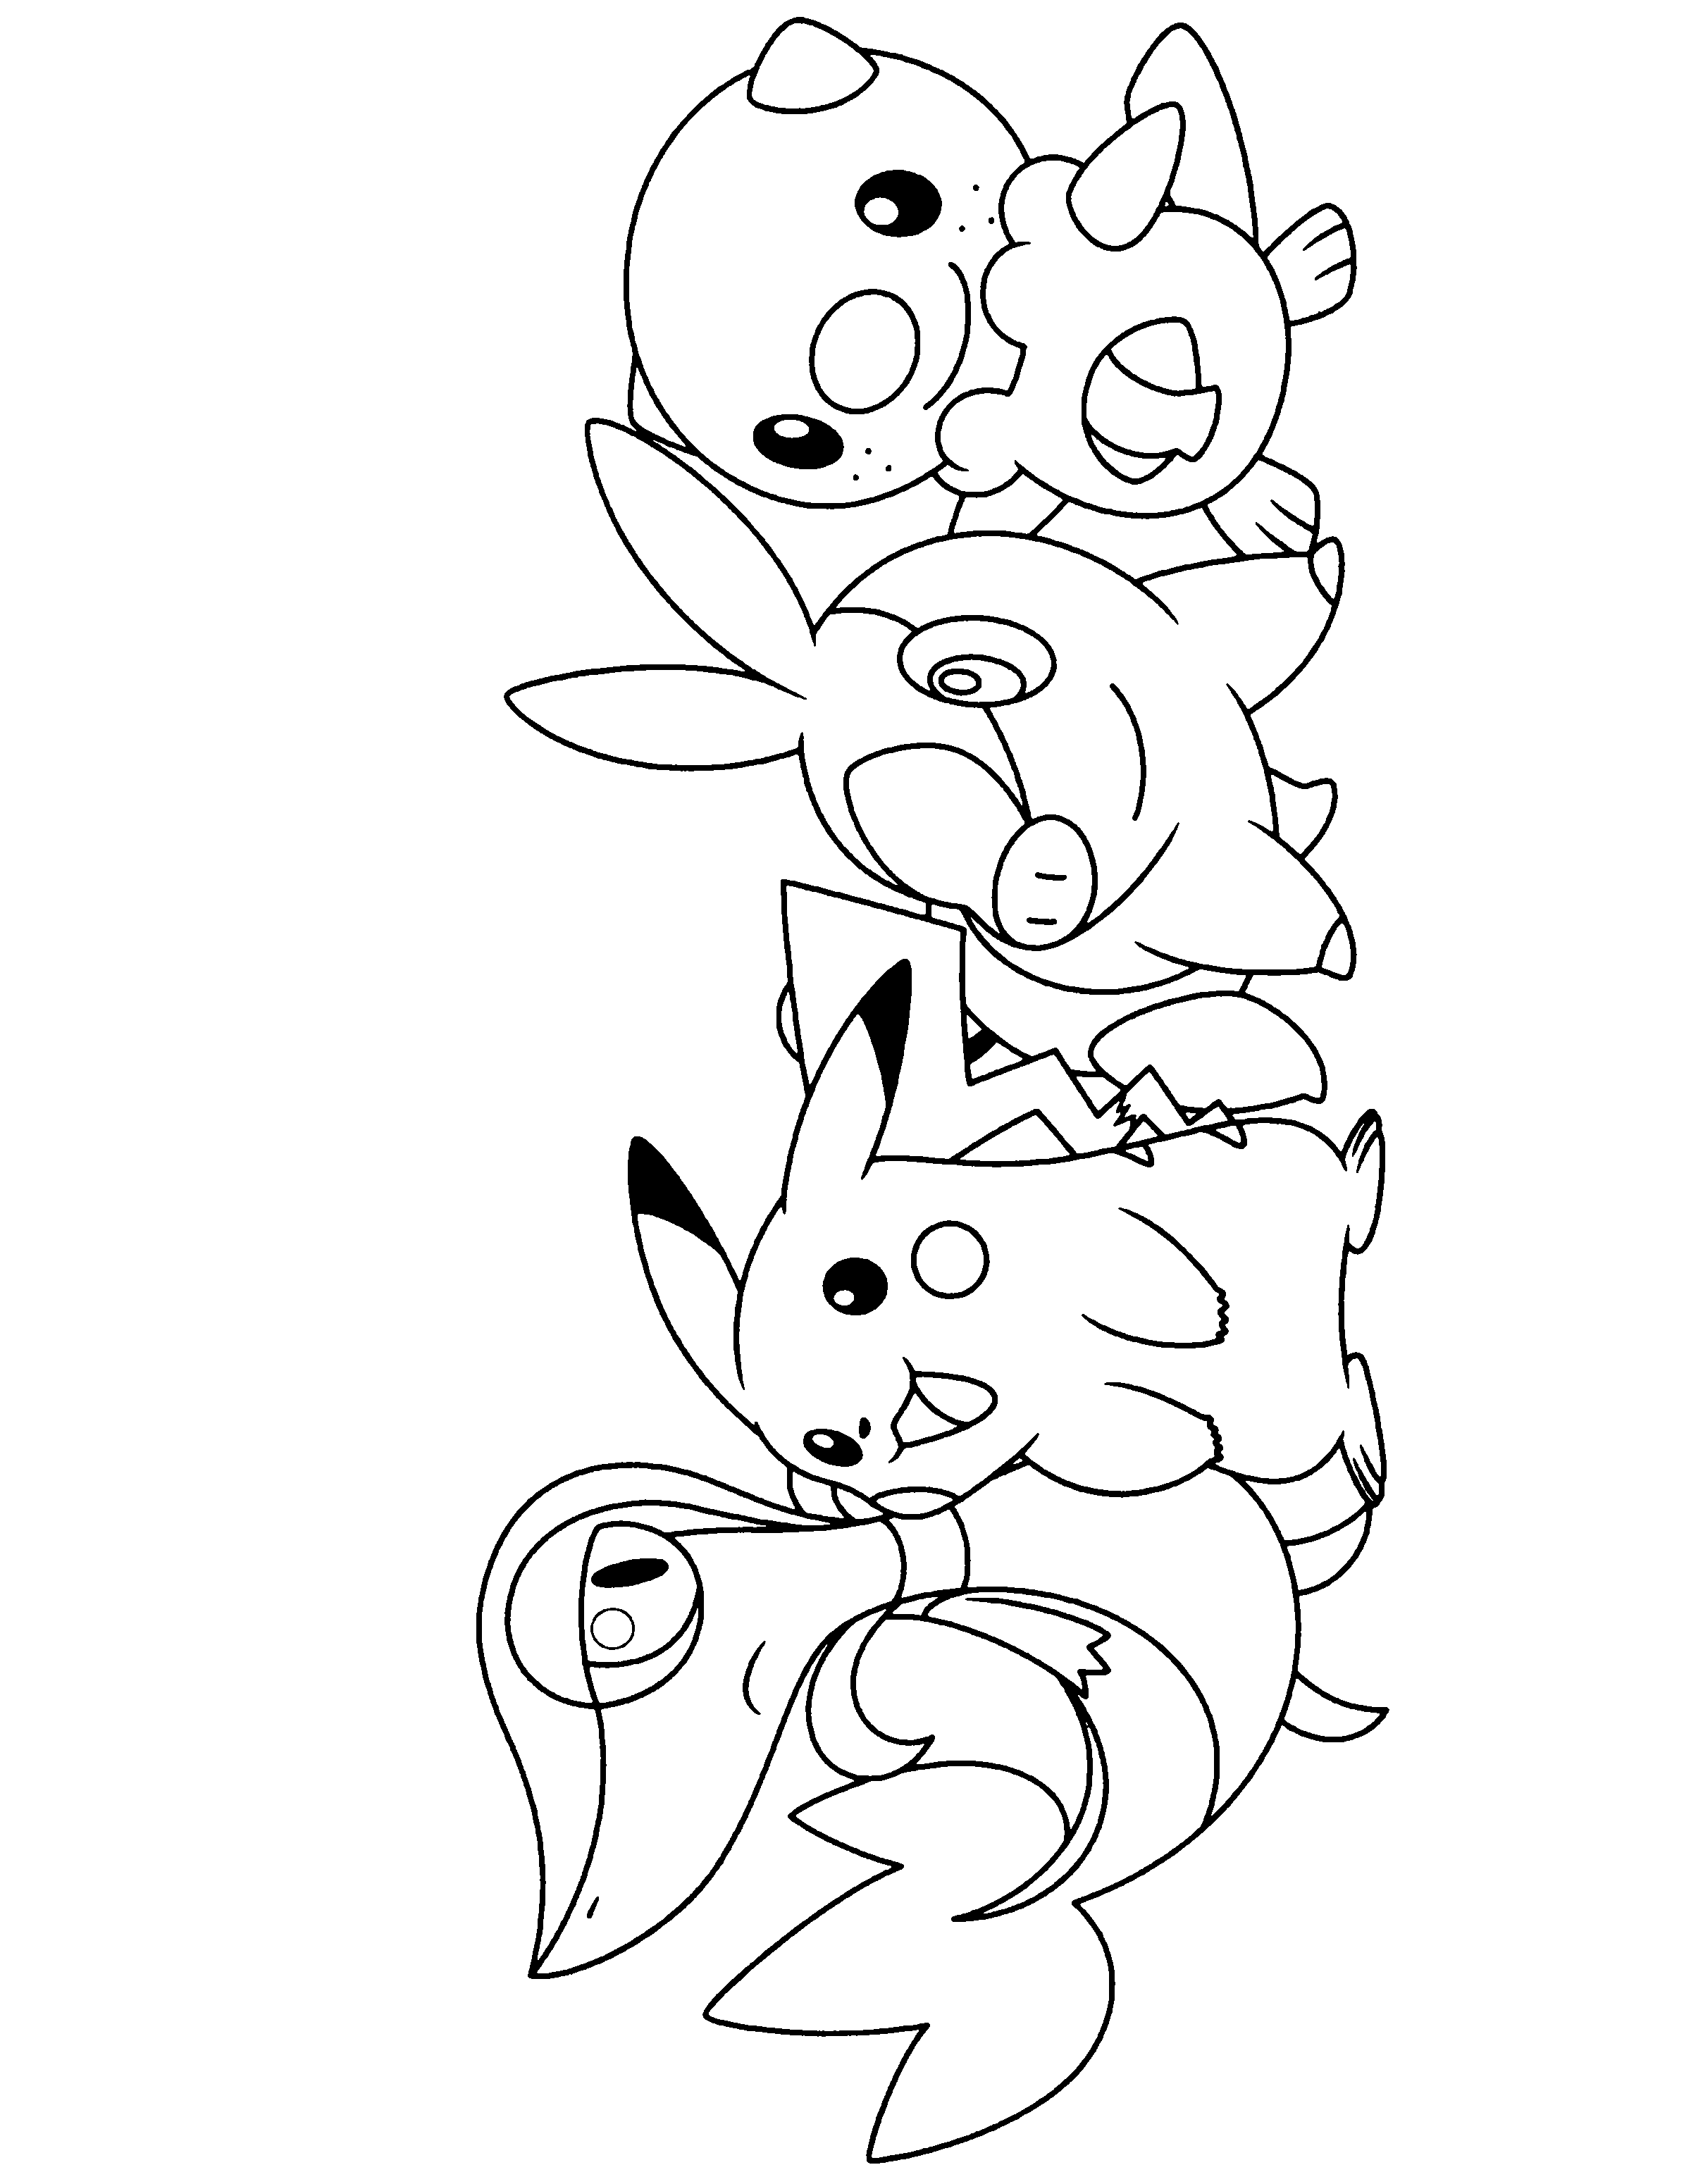 colouring pages of pokemon black and white pokémon black and white coloring pages free gtgt disney of pokemon and white black colouring pages